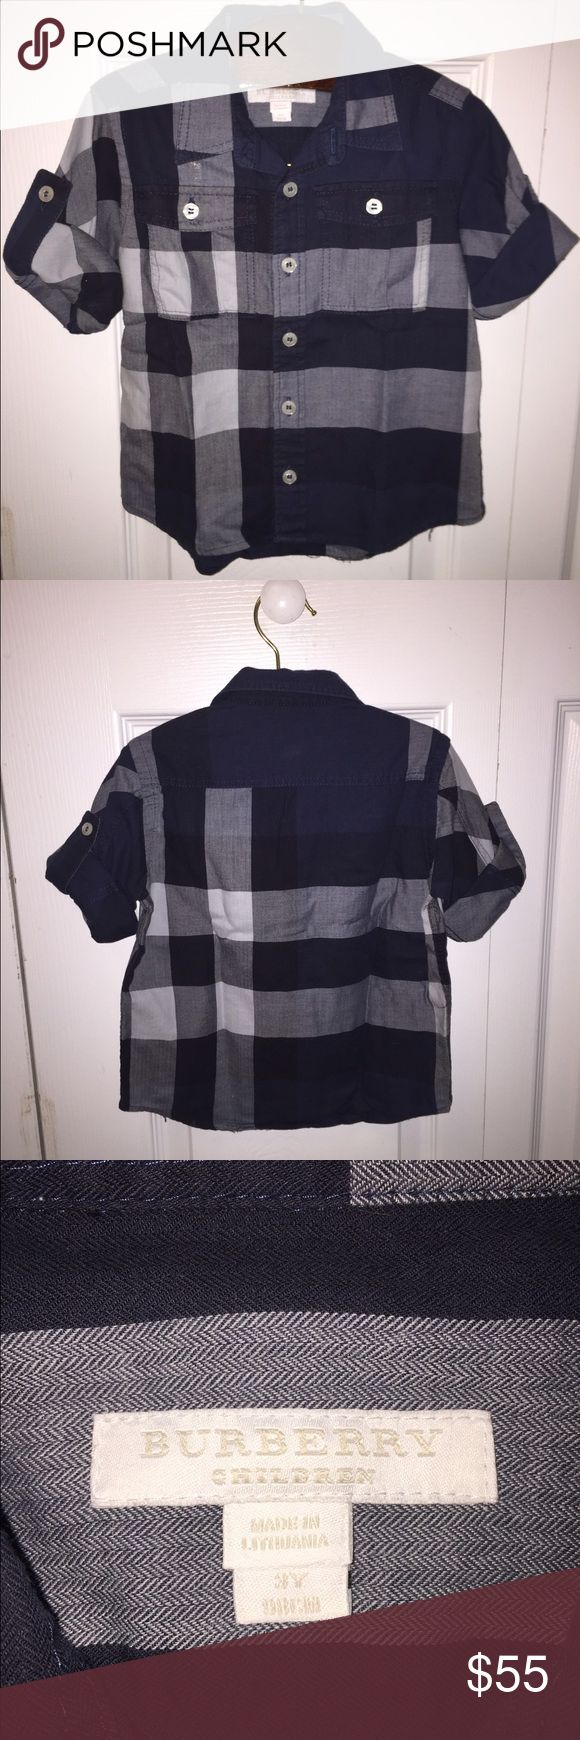 Boys Burberry button down dress shirt 3T Super stylish Burberry boys button down dress shirt in size 3T.  Excellent condition! Burberry Shirts & Tops Button Down Shirts